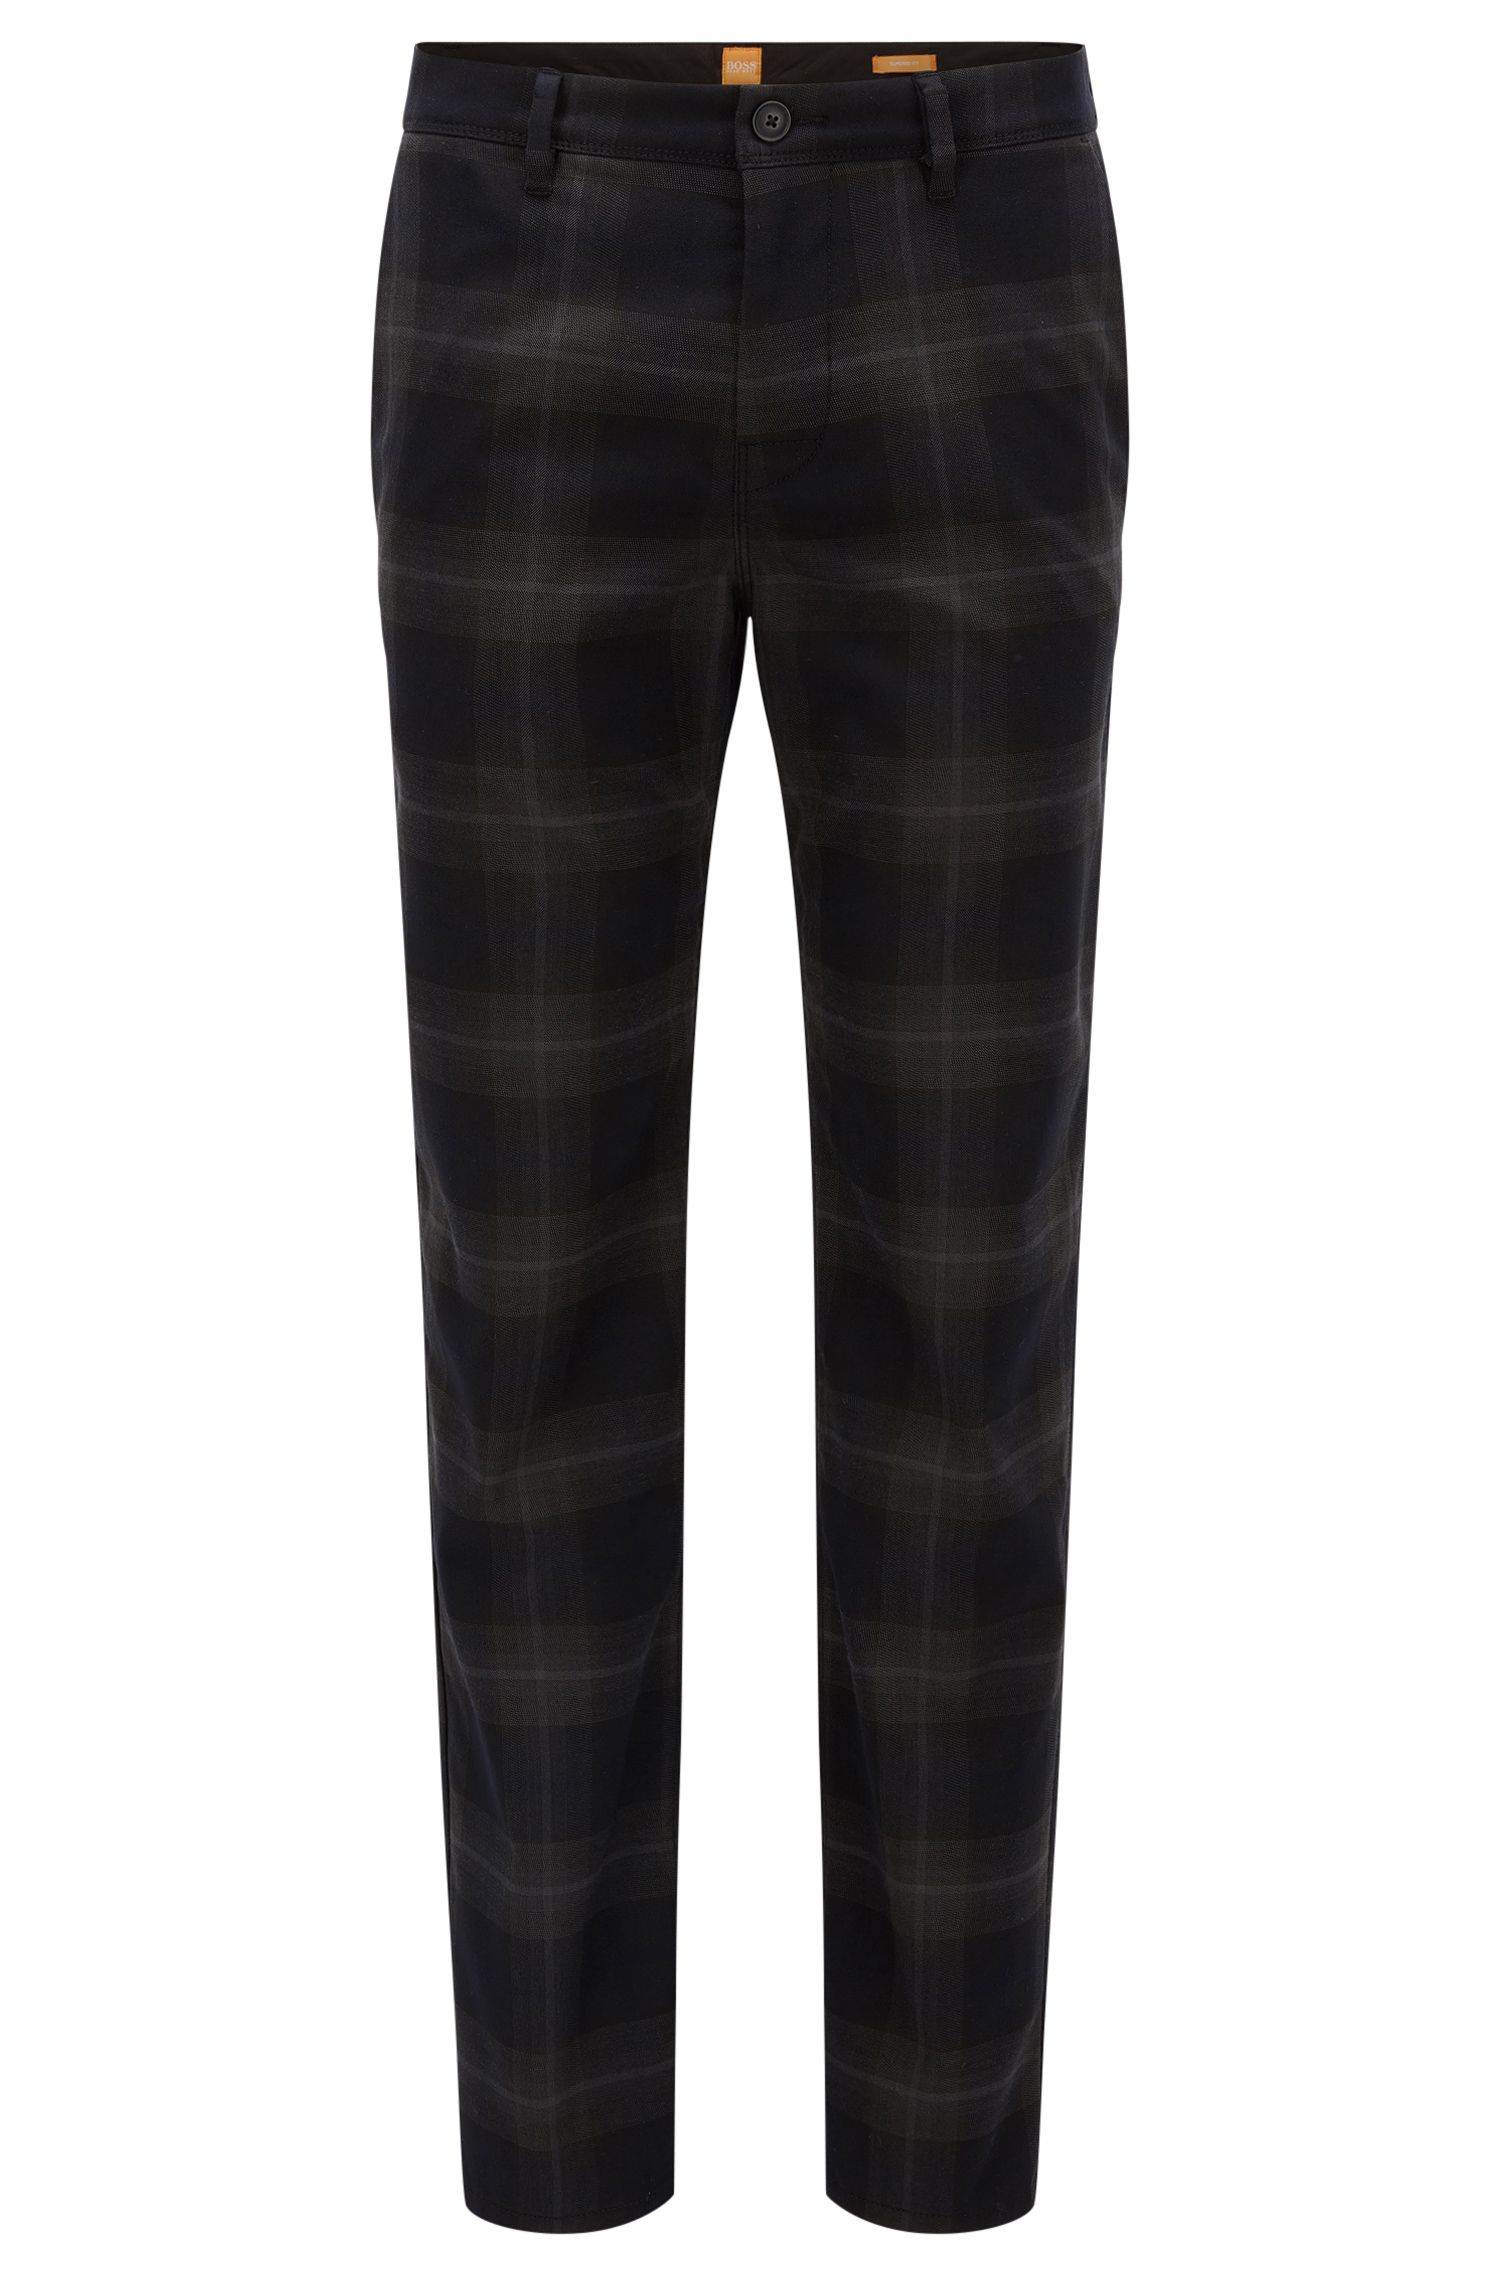 Plaid Stretch Pants, Tapered Fit   Stapered W